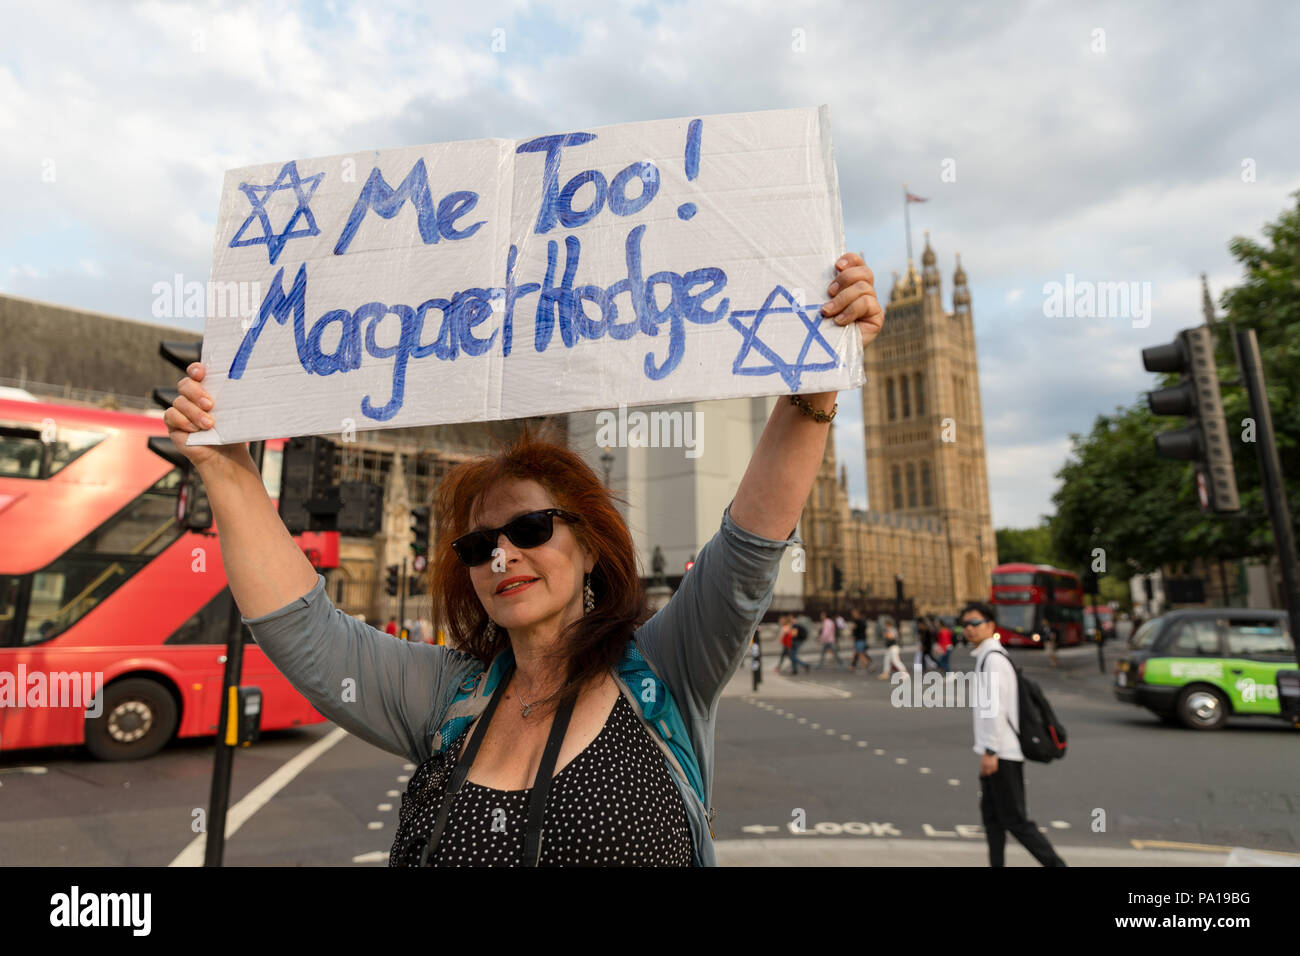 London, UK. 19th July 2018. The campaign group, Campaign Against Antisemitism, Jewish community groups and their supporters stage a protest in Parliament Square against the Labour Party anti-semitism code following the party's announcement that it will take action against Dame Margaret Hodge MP for calling Jeremy Corbyn an 'antisemite'. Credit: Vickie Flores/Alamy Live News - Stock Image